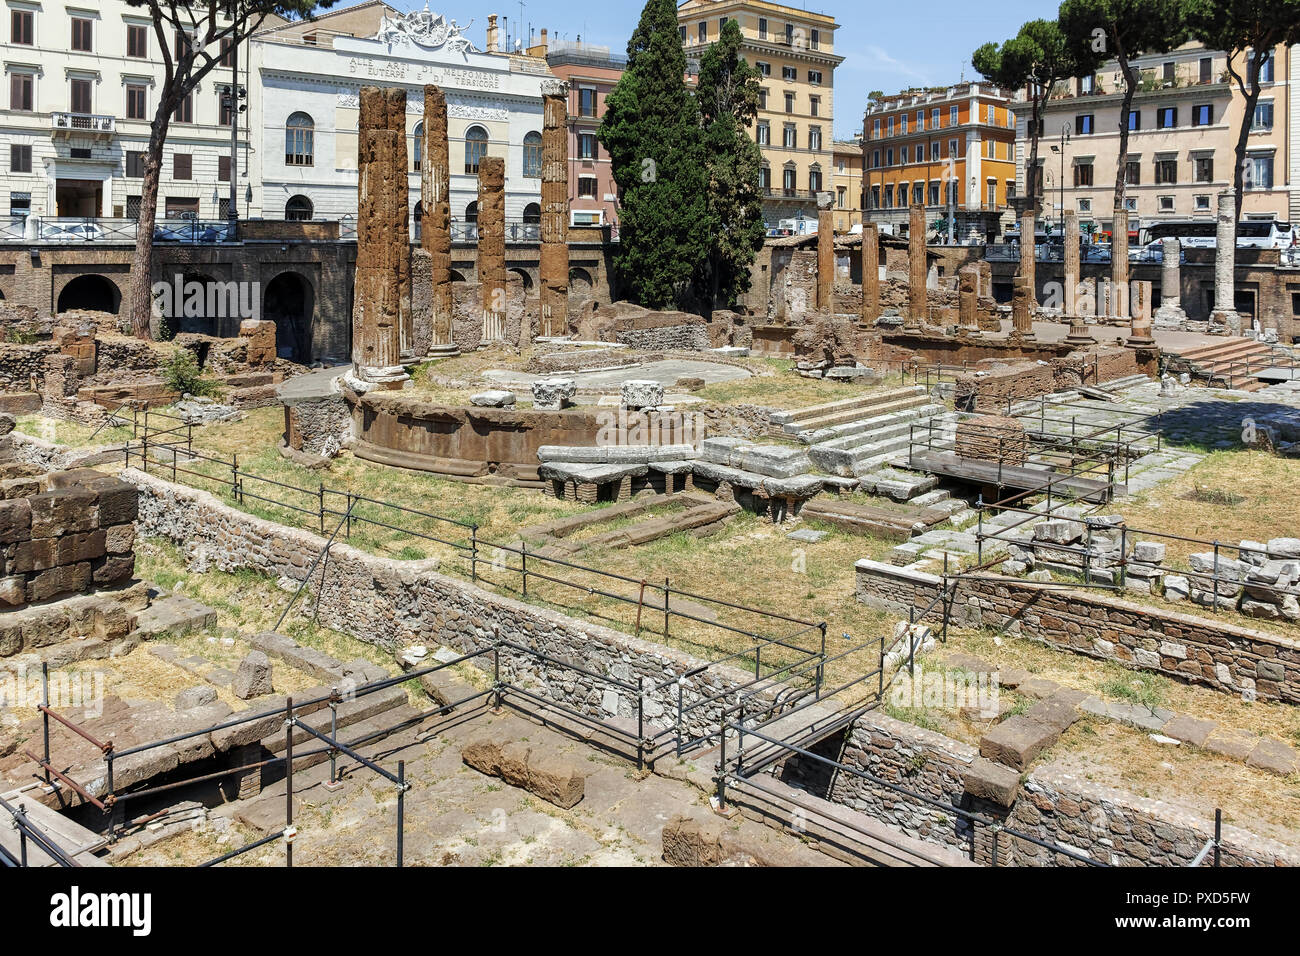 ROME, ITALY - JUNE 23, 2017: Amazing view of Largo di Torre Argentina in city of Rome, Italy - Stock Image